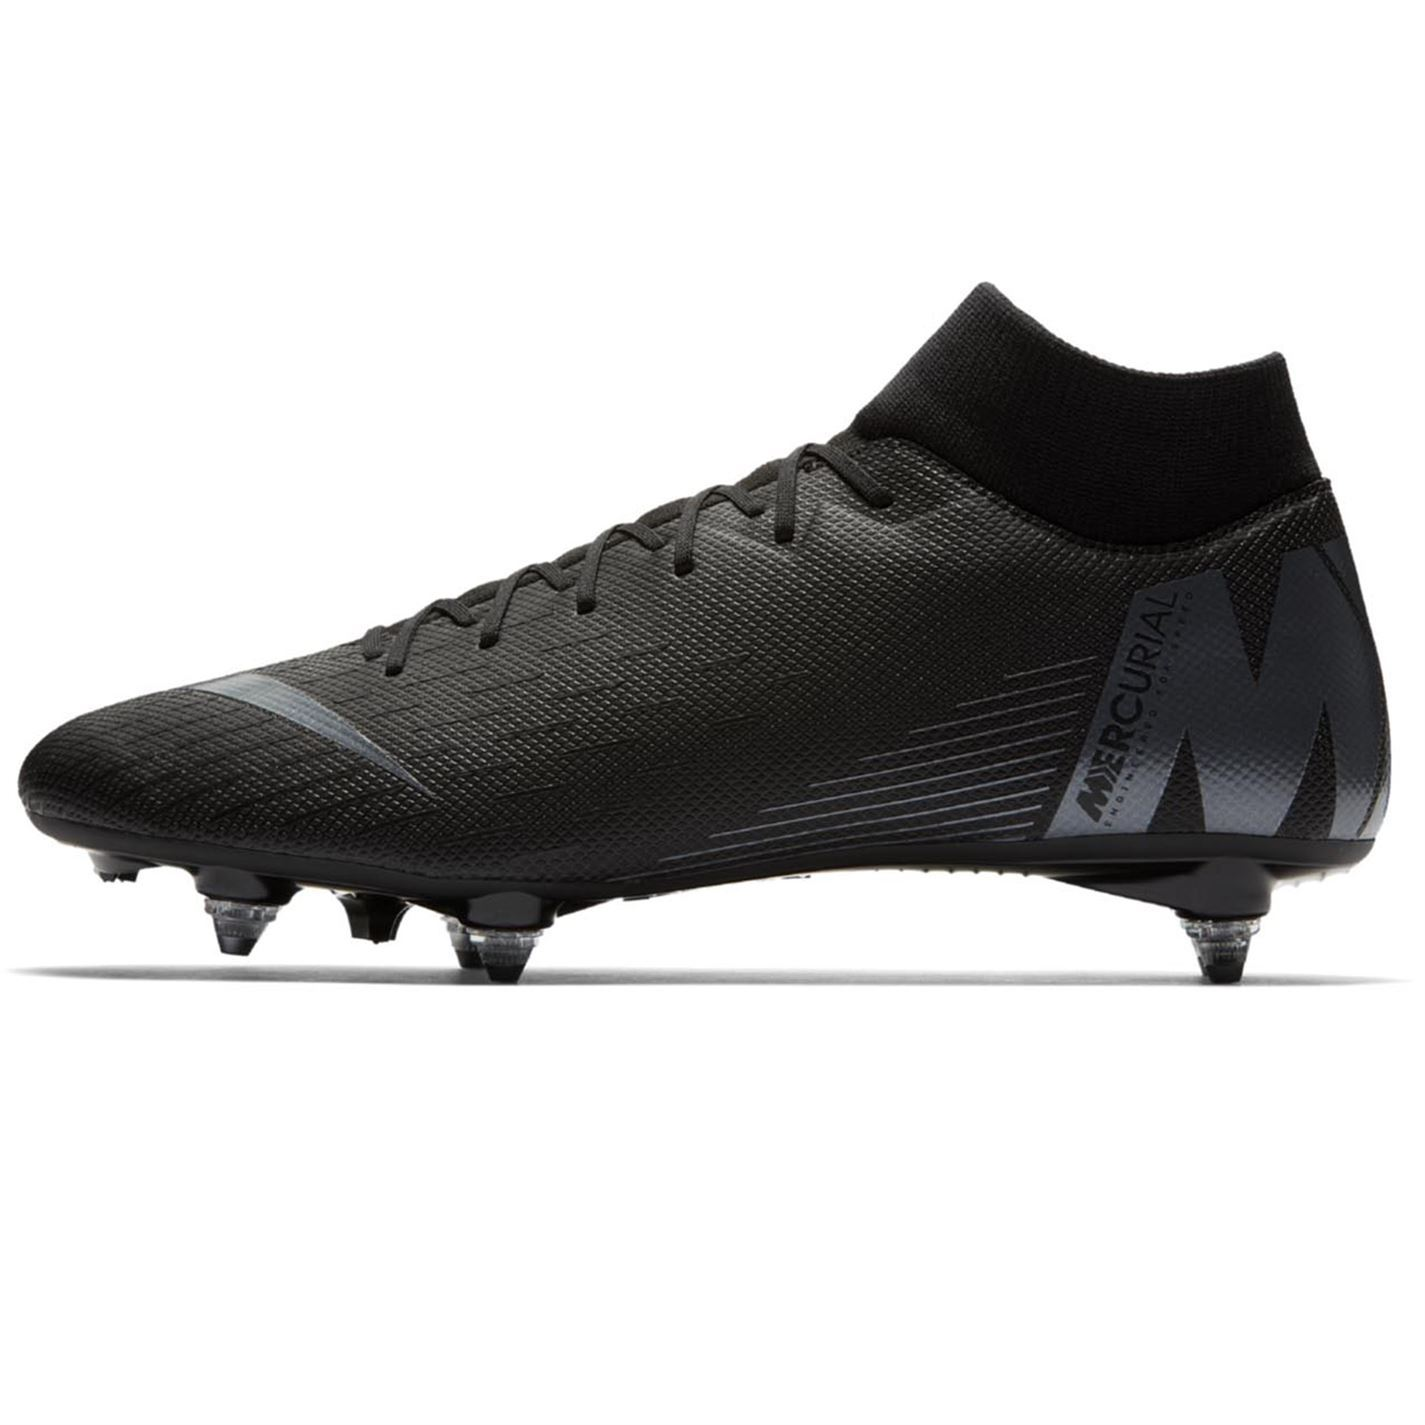 3014df394d1f ... Nike Mercurial Superfly Academy DF Soft Ground Football Boots Mens  Soccer Cleats